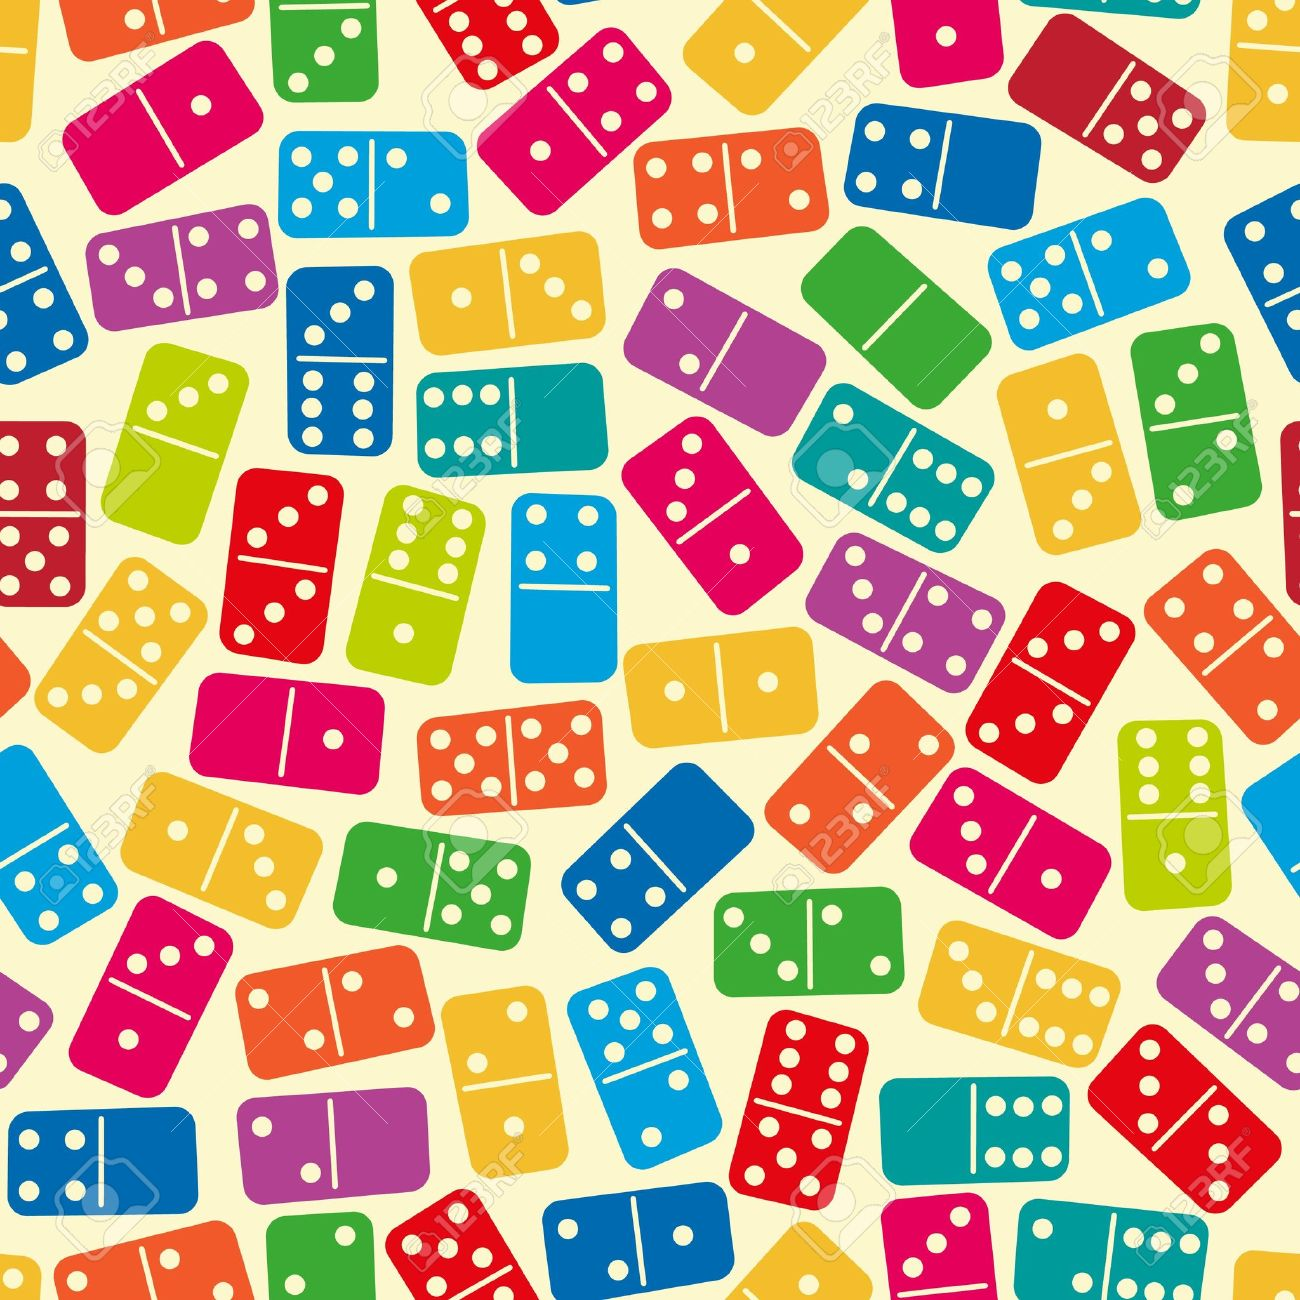 Game board colors - Board Game Seamless Stylish Color Dominoes Pattern Vector Illustration